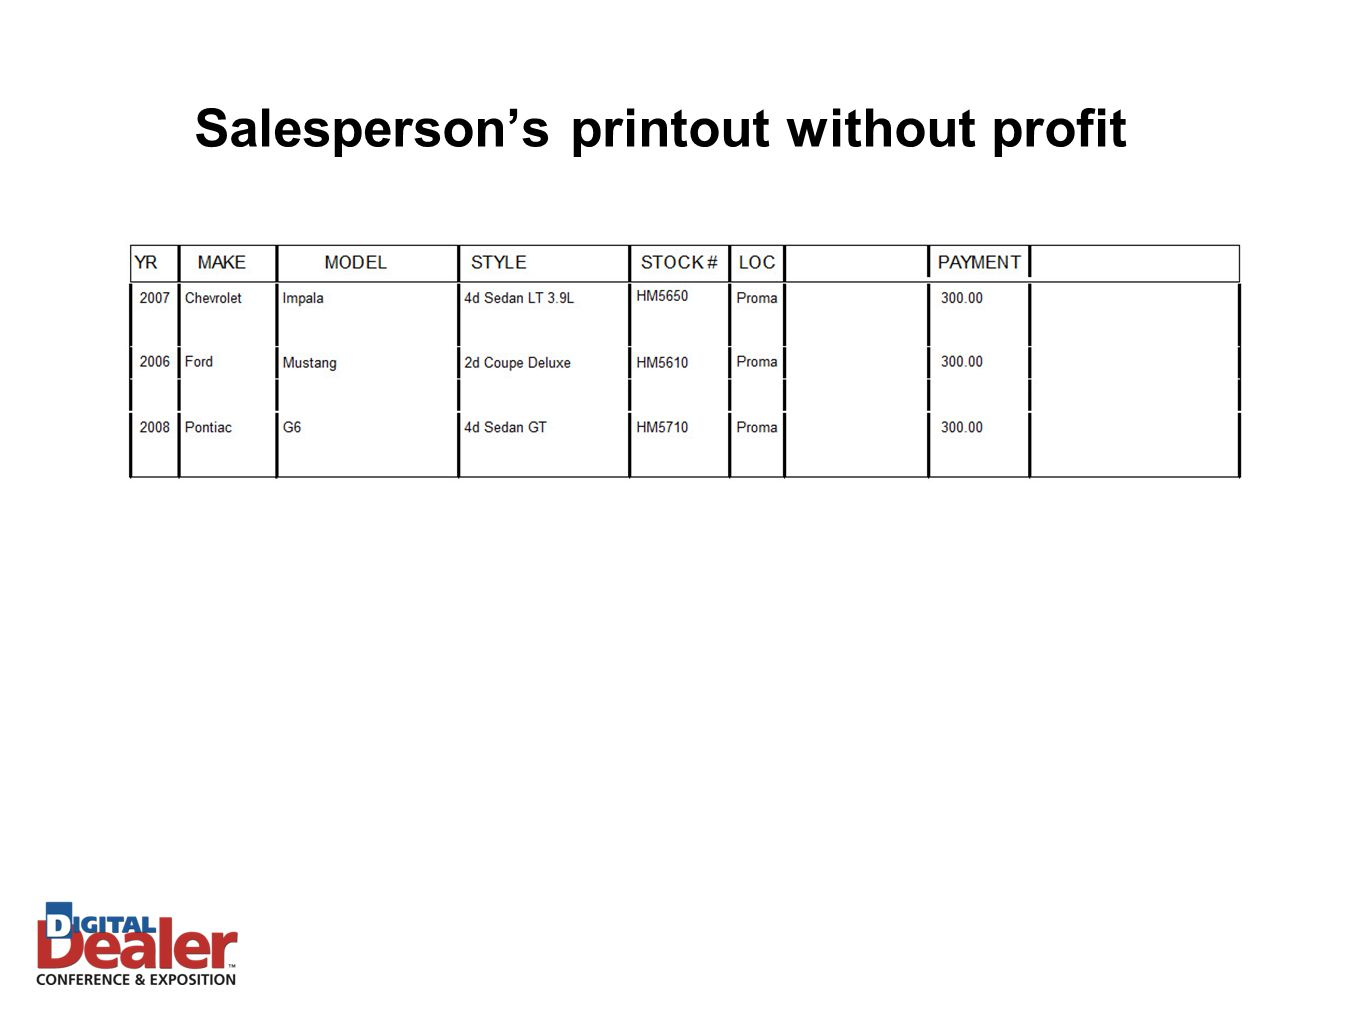 Salesperson's printout without profit